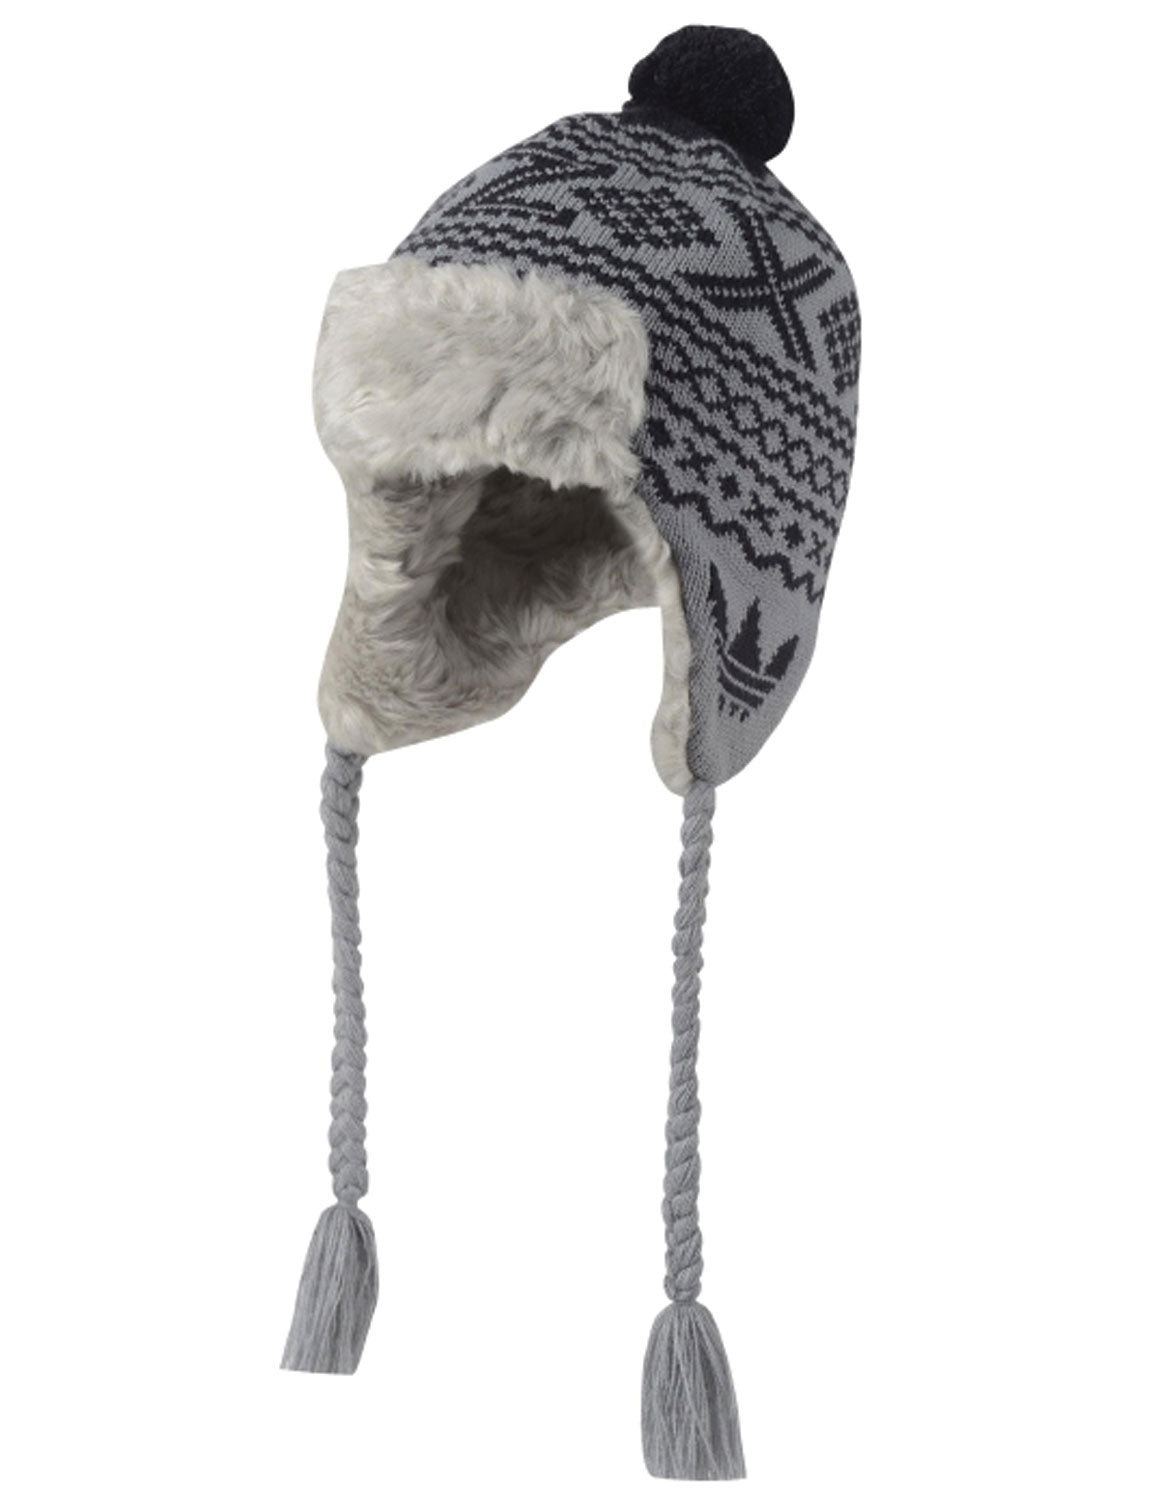 adidas Originals ZX Pershanka Beanie Pompom Winter Hat G86760 ... 79330bf6262